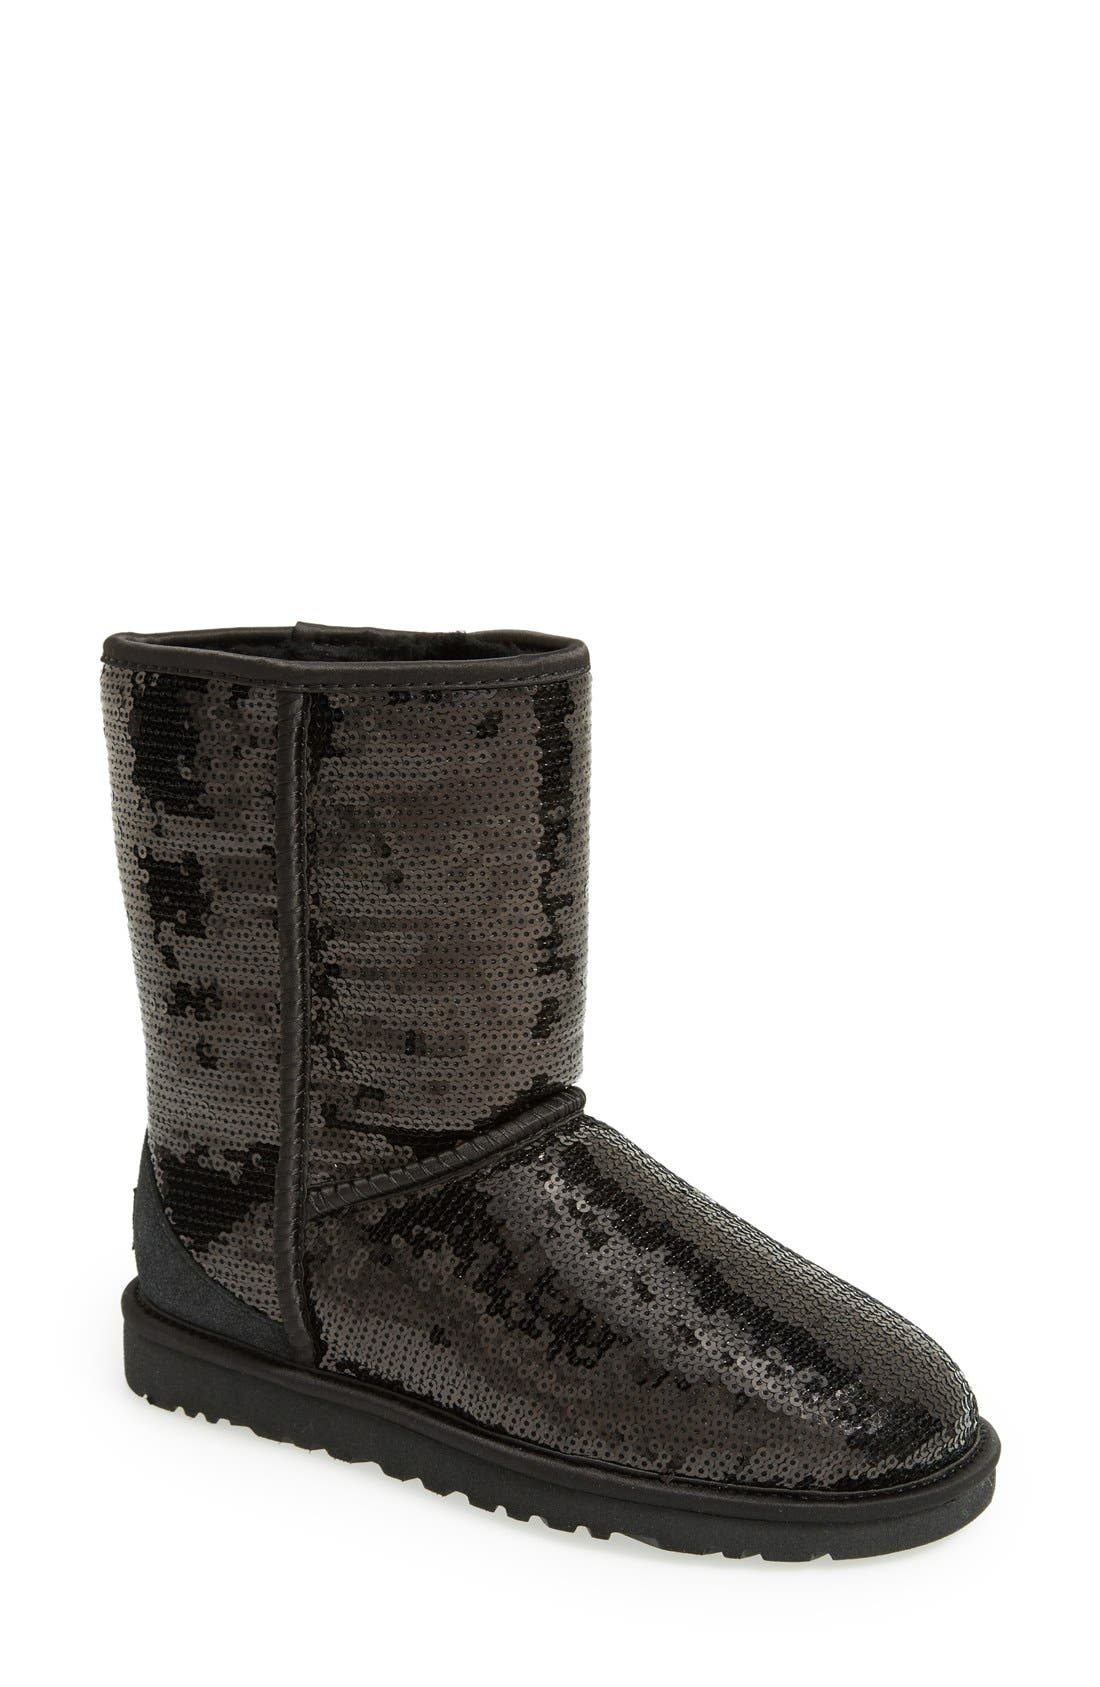 Alternate Image 1 Selected - UGG® Classic Short with Sparkles Boot